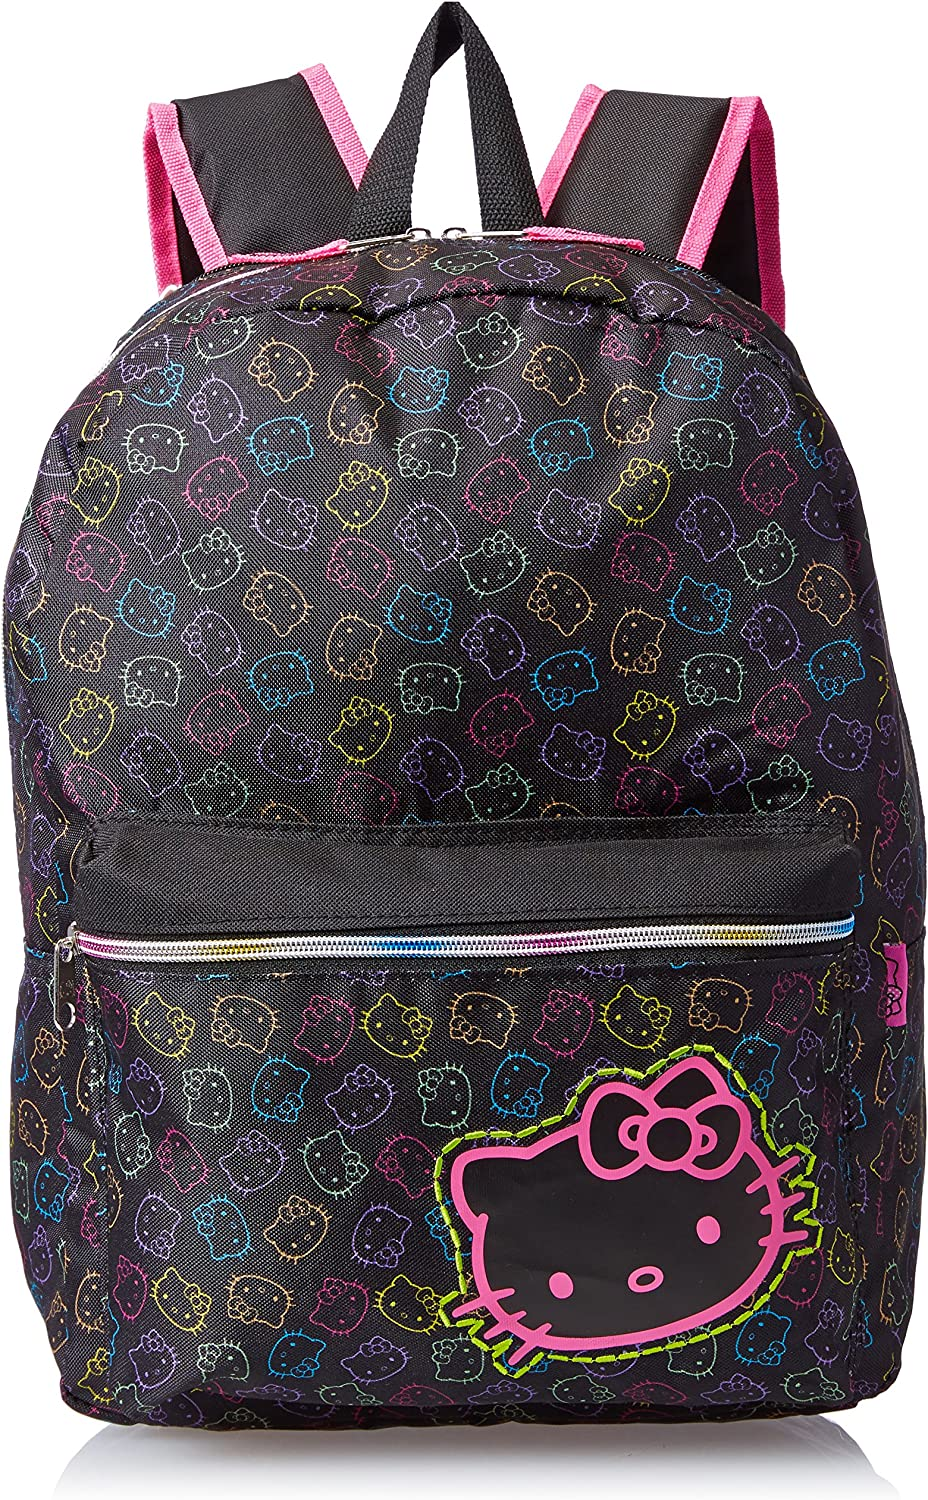 Hello Kitty Bright Lights Backpack